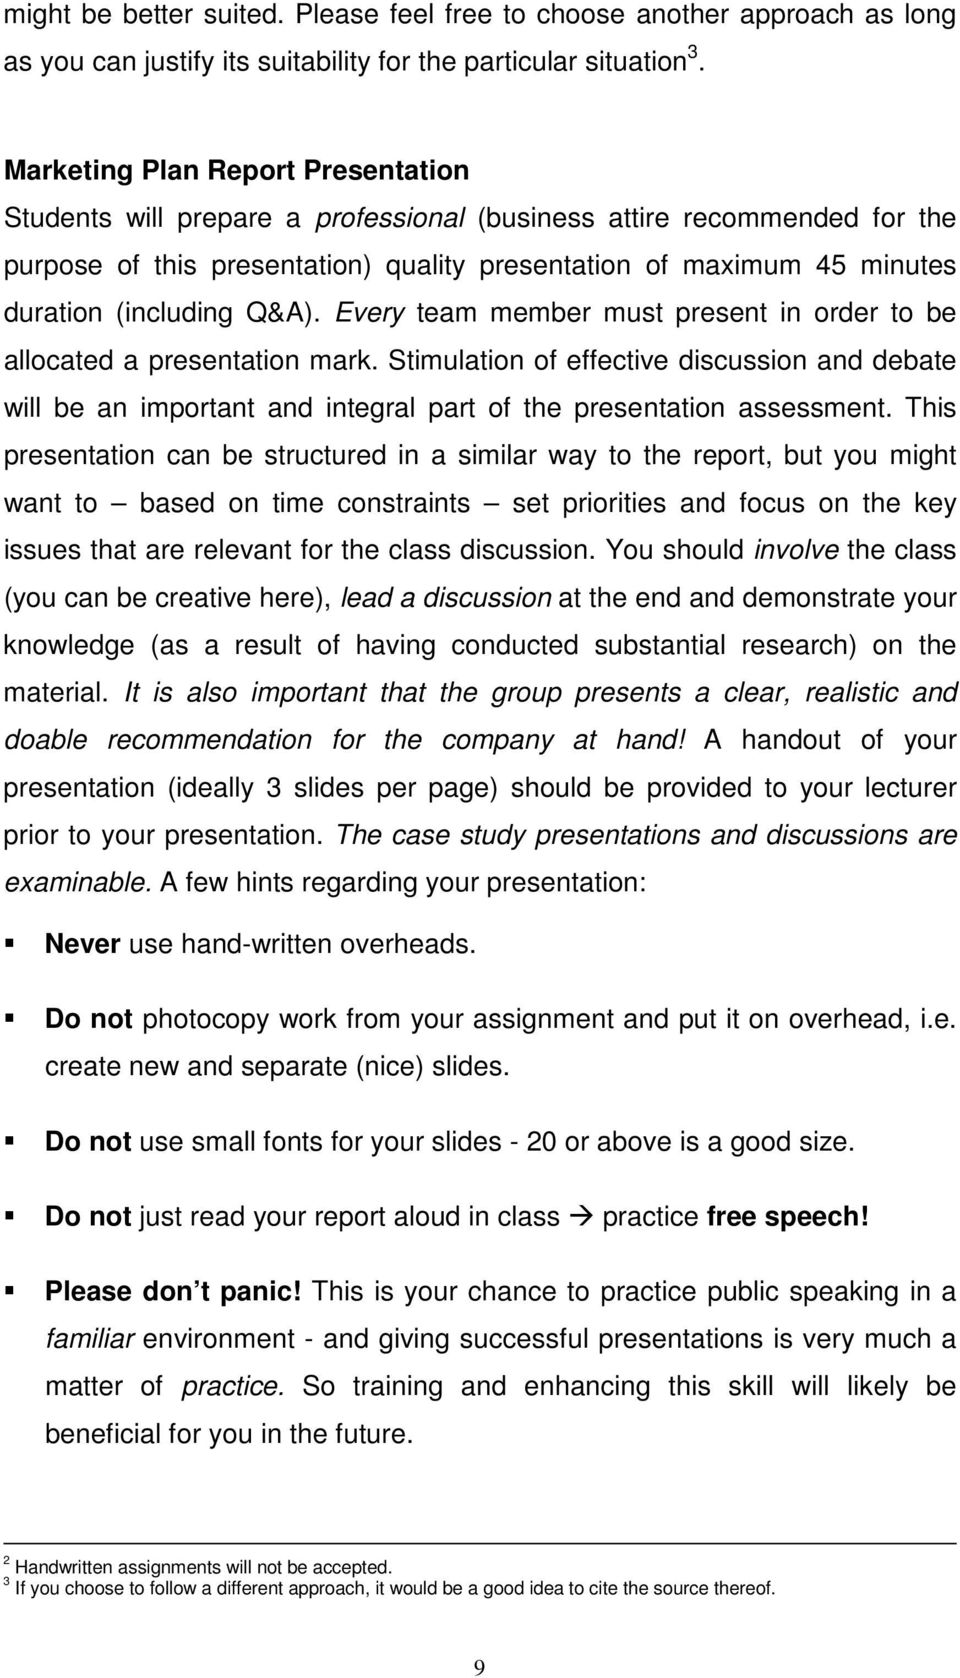 (including Q&A). Every team member must present in order to be allocated a presentation mark.